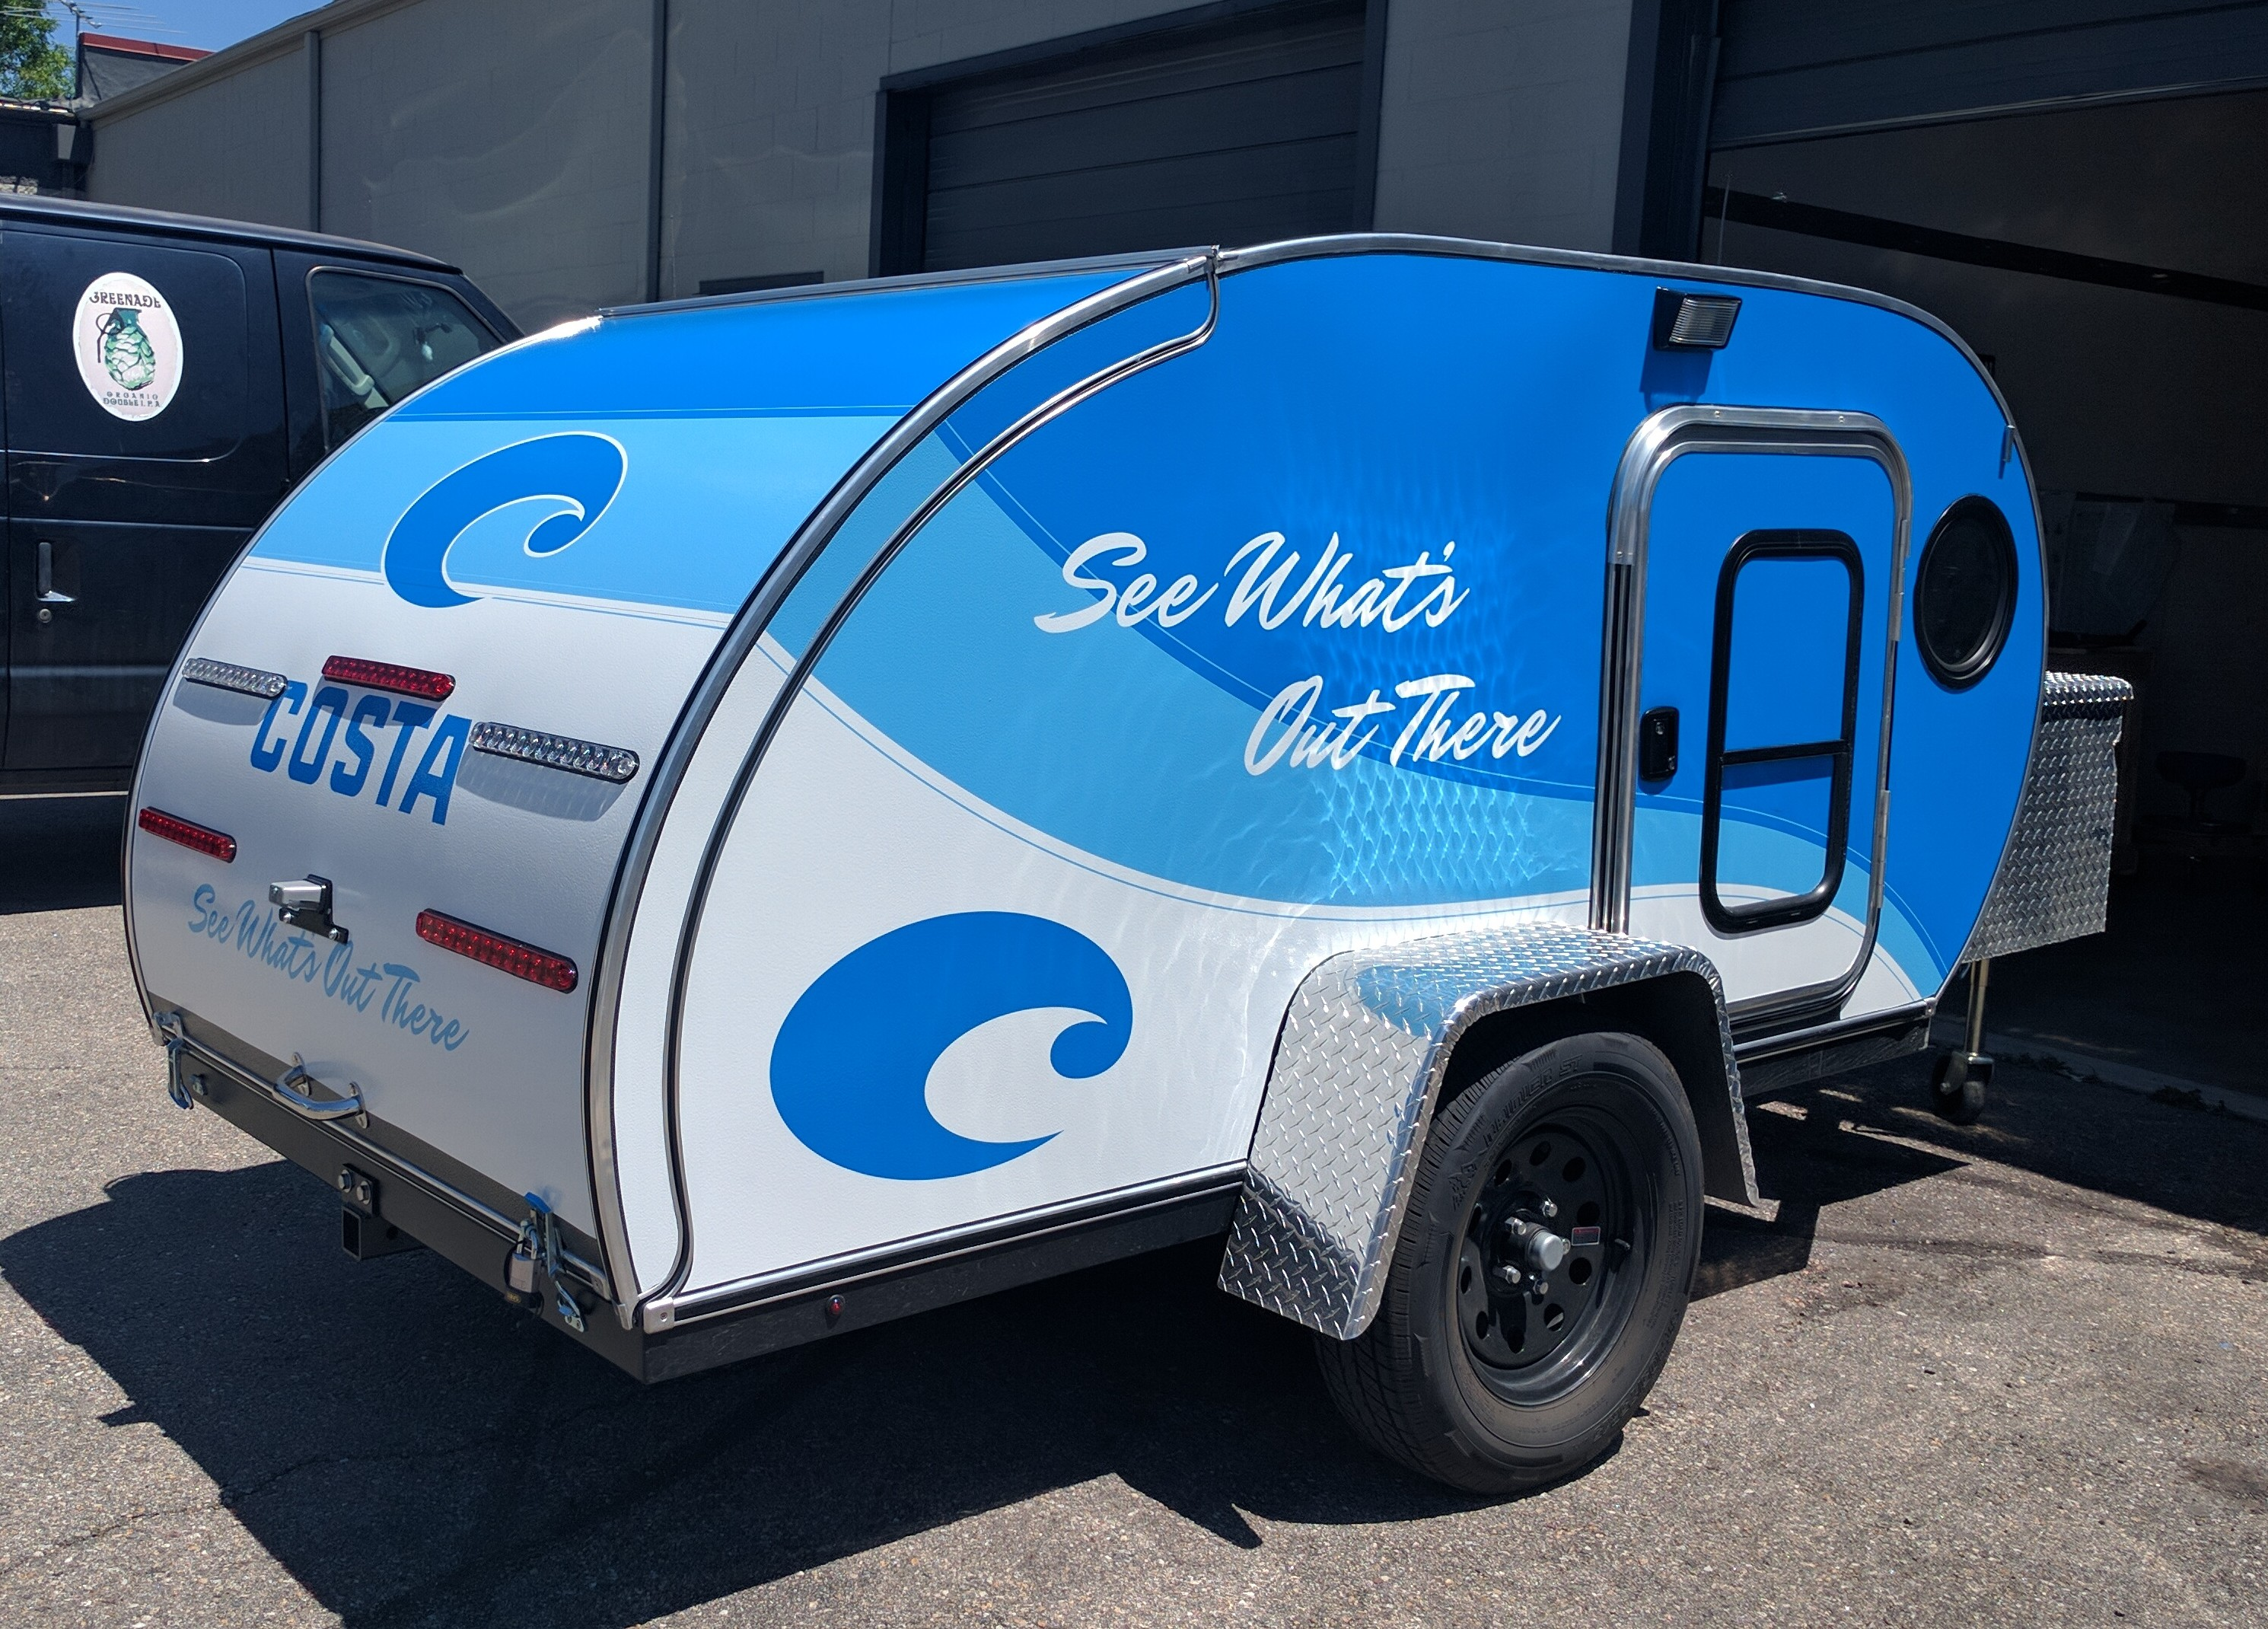 trailer graphcis, trailer wrap